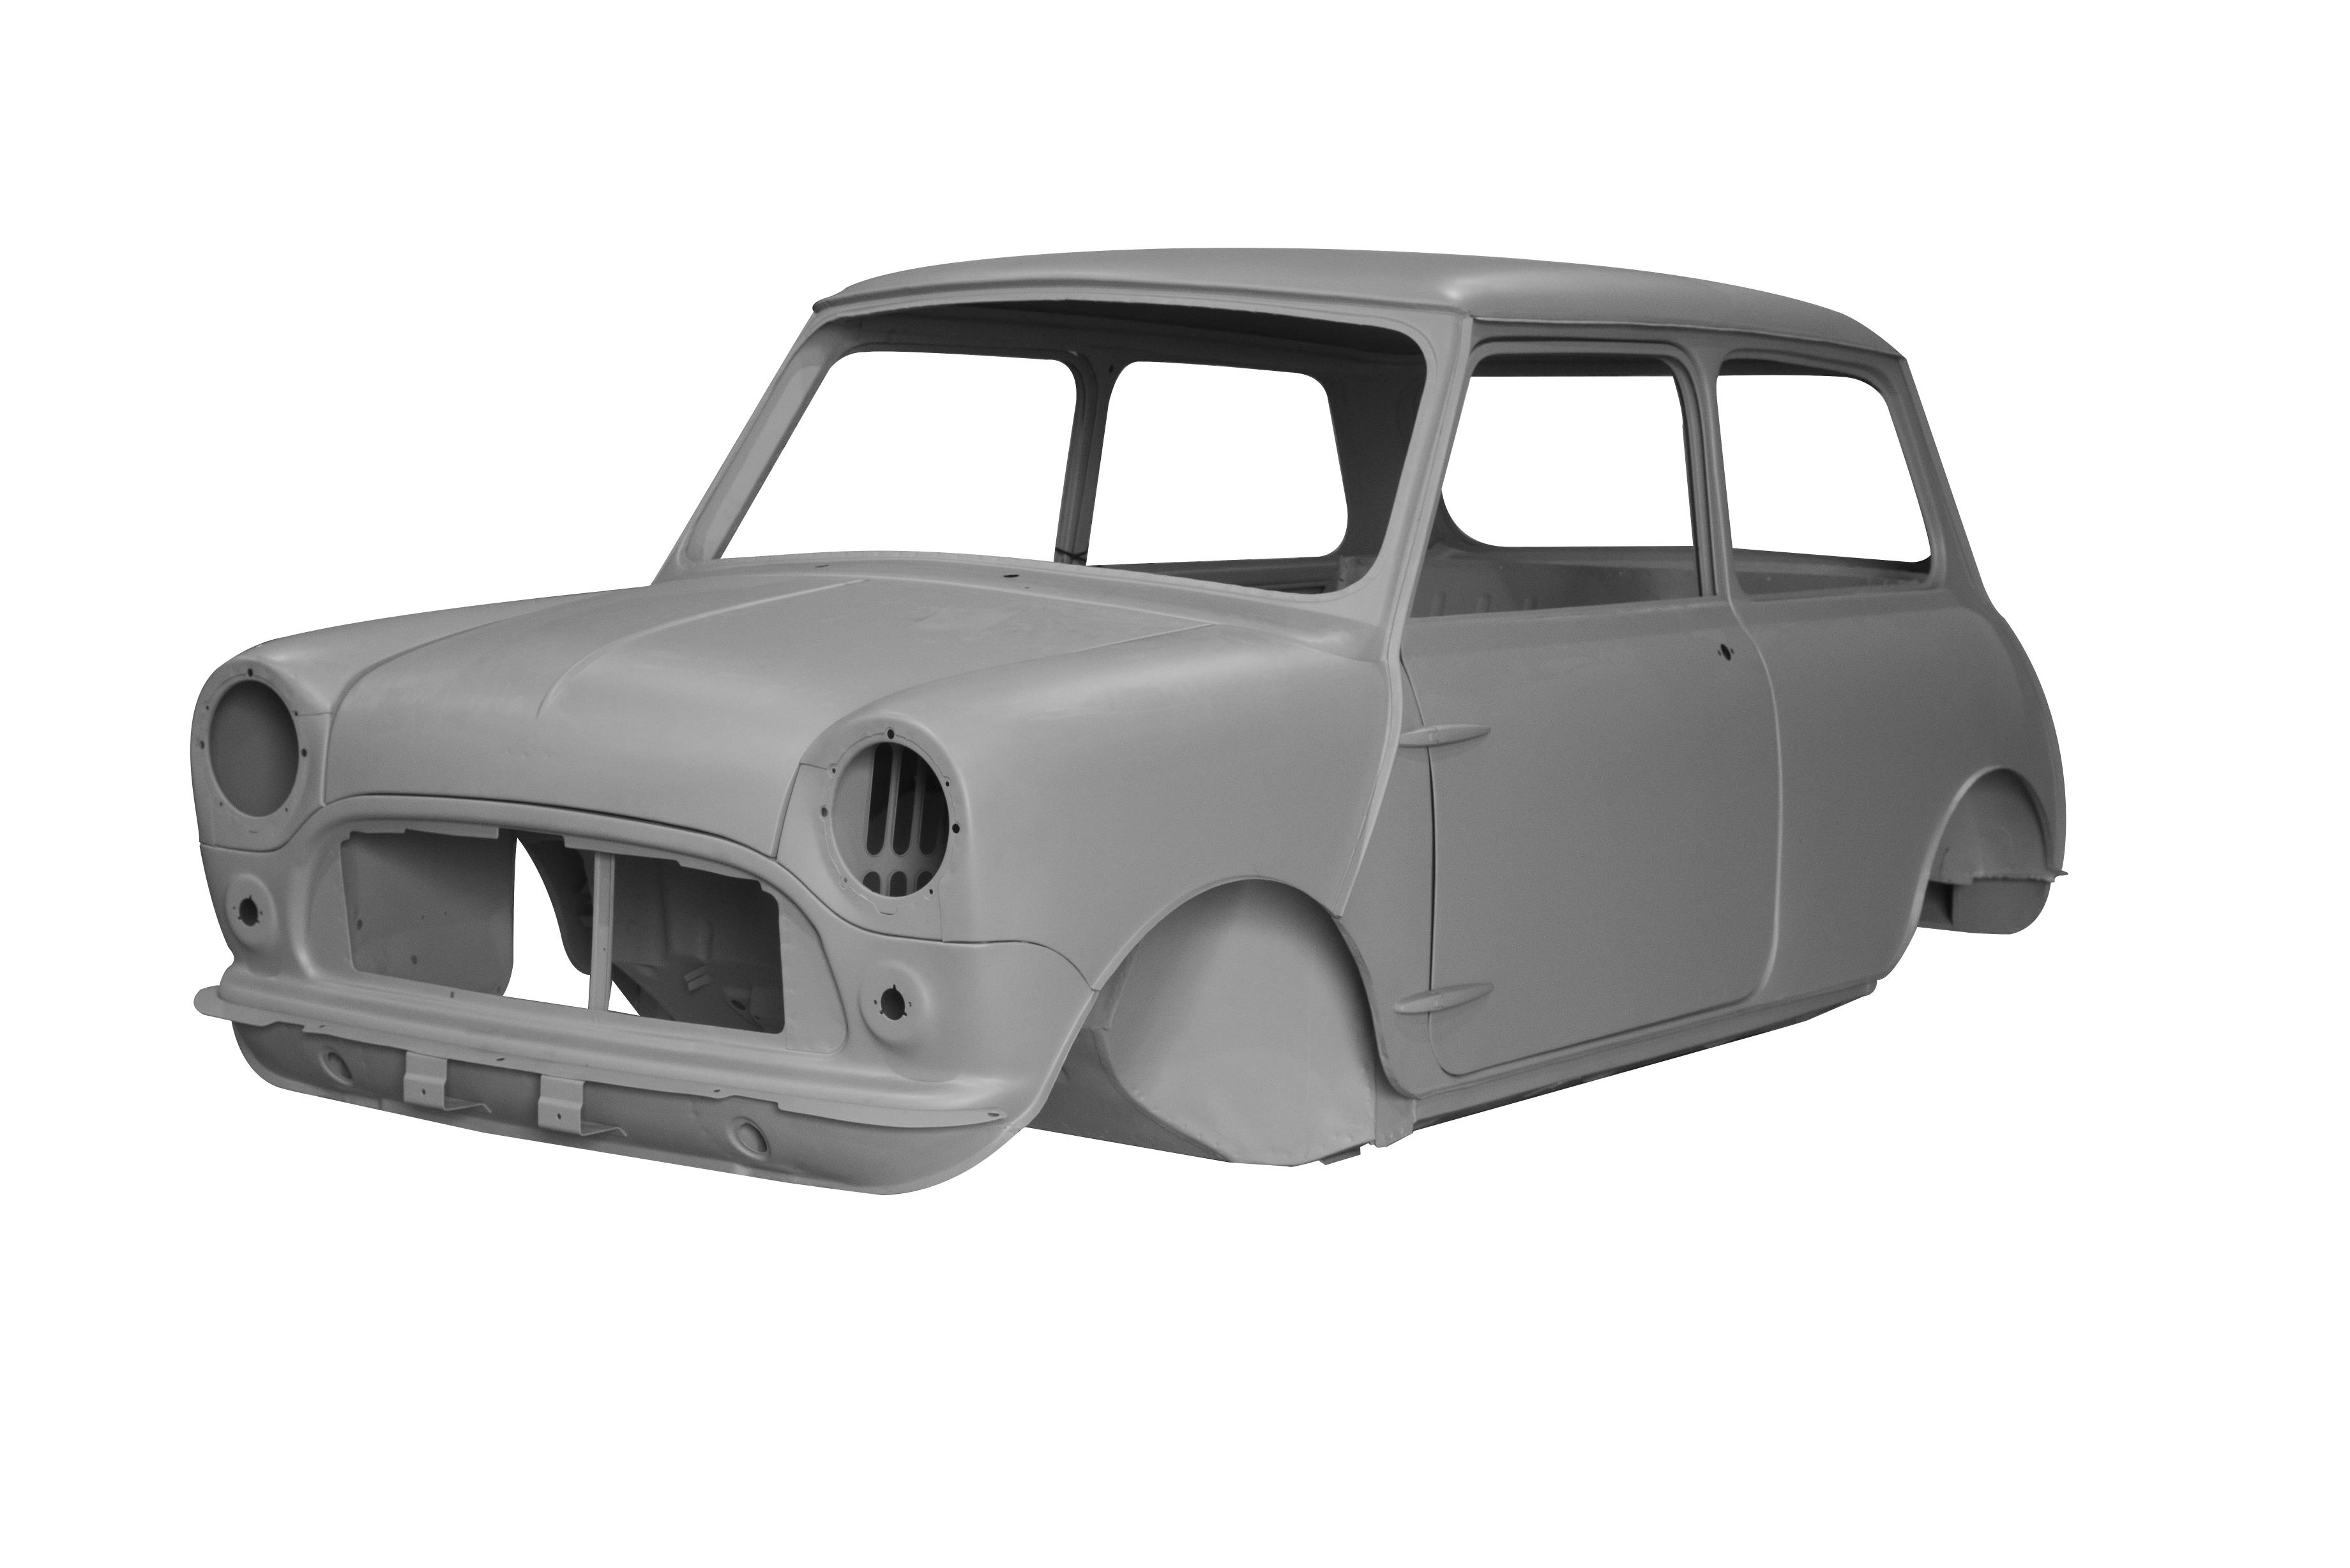 MINI Launches Replacement Body Shells for the MK1